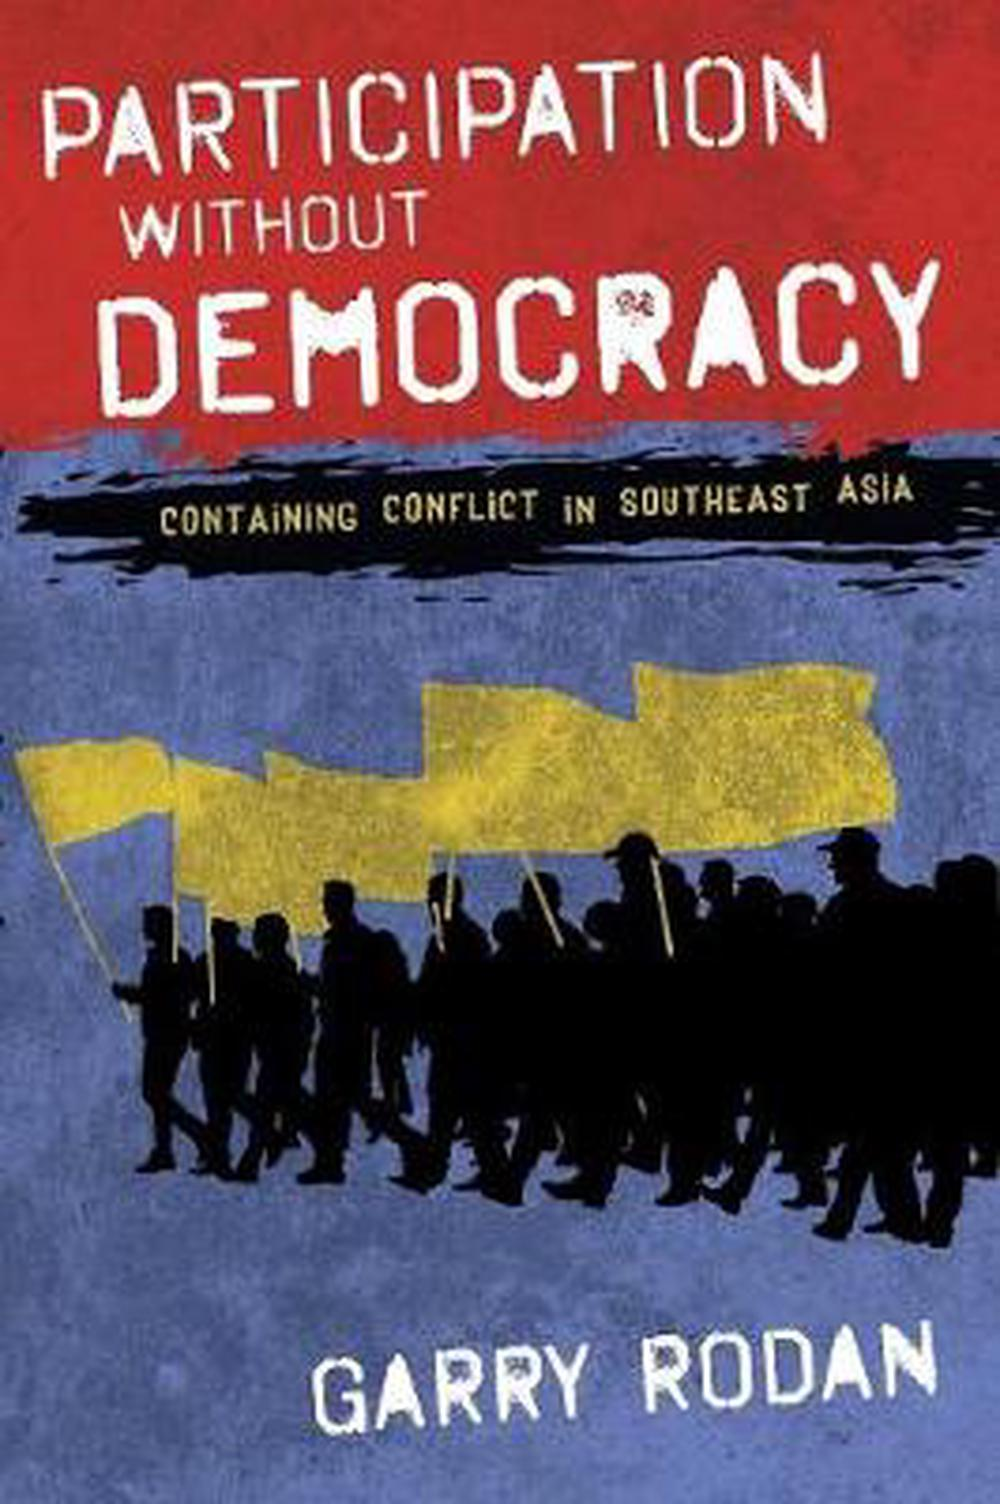 Participation without Democracy: Containing Conflict in Southeast Asia by Garry Rodan, ISBN: 9781501720116